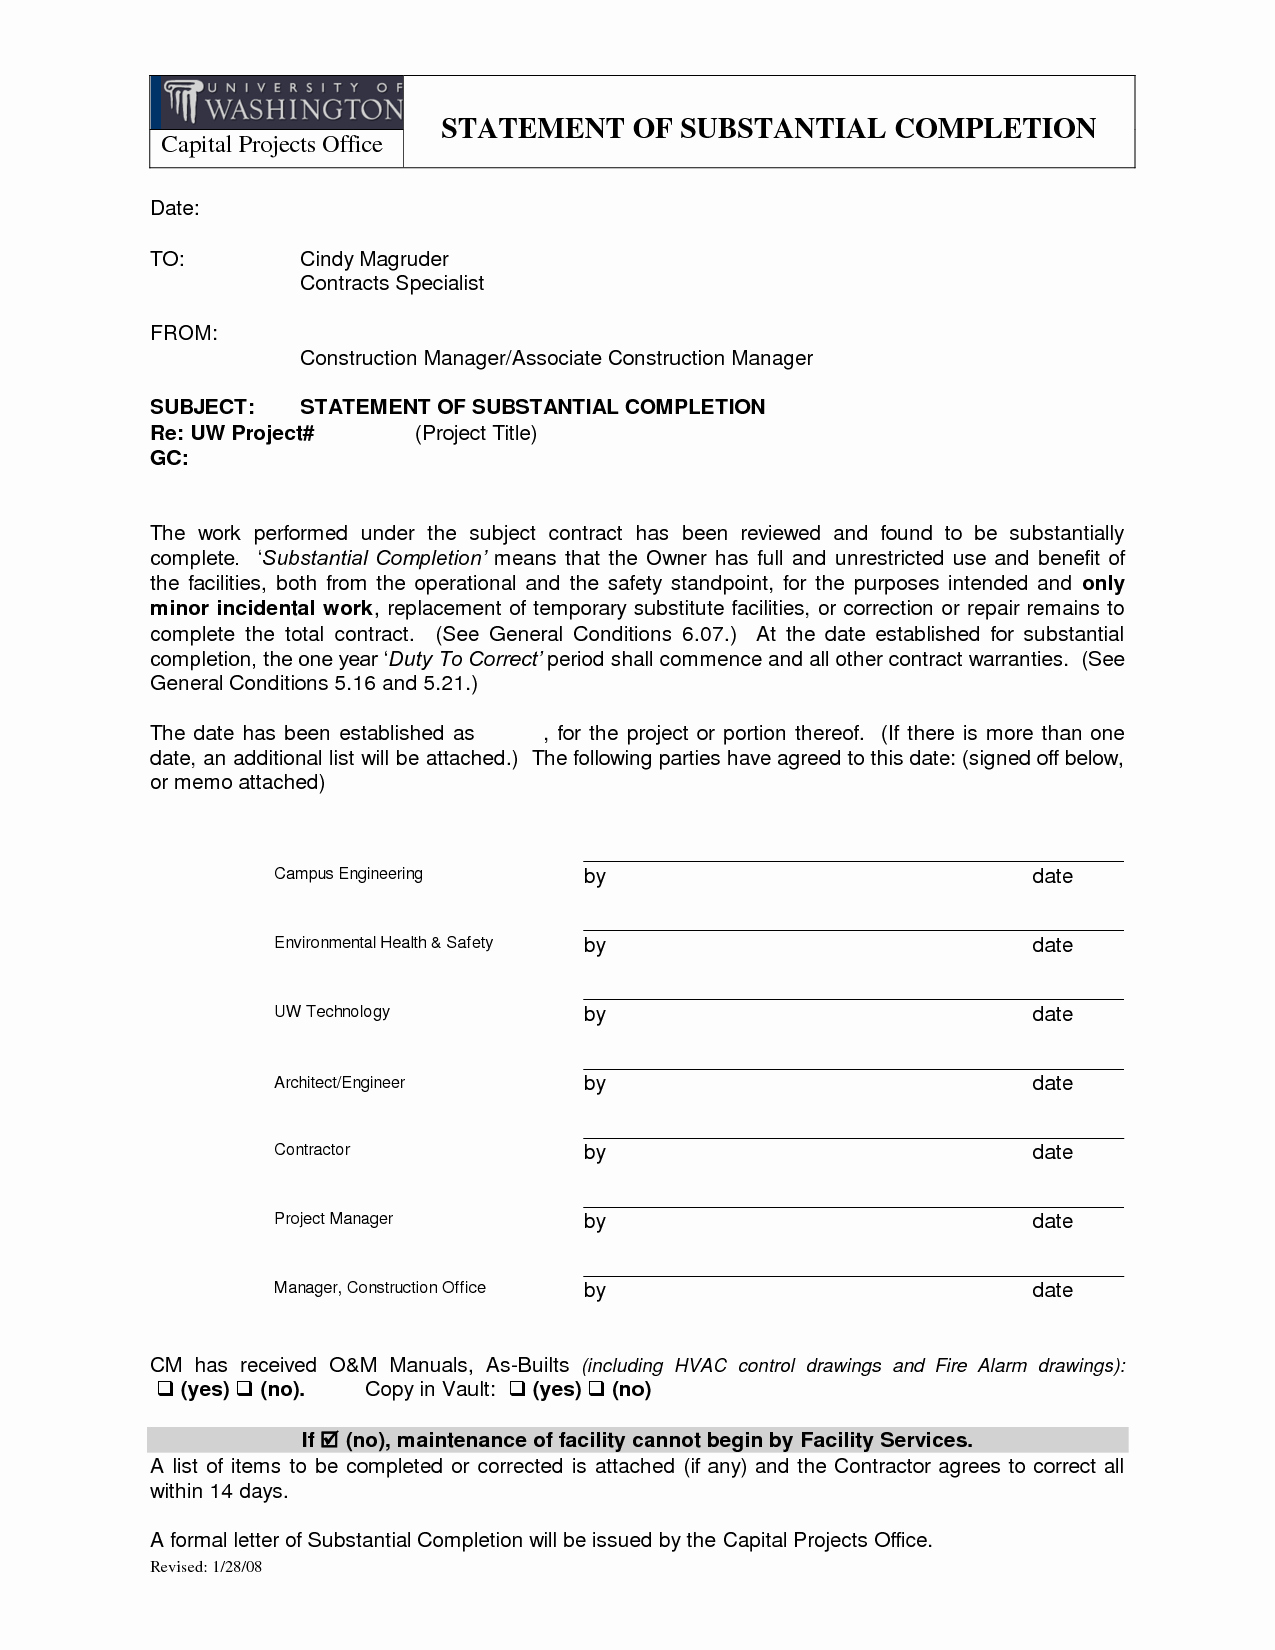 Notice Of Completion Template Best Of Download Certificate Substantial Pletion form for